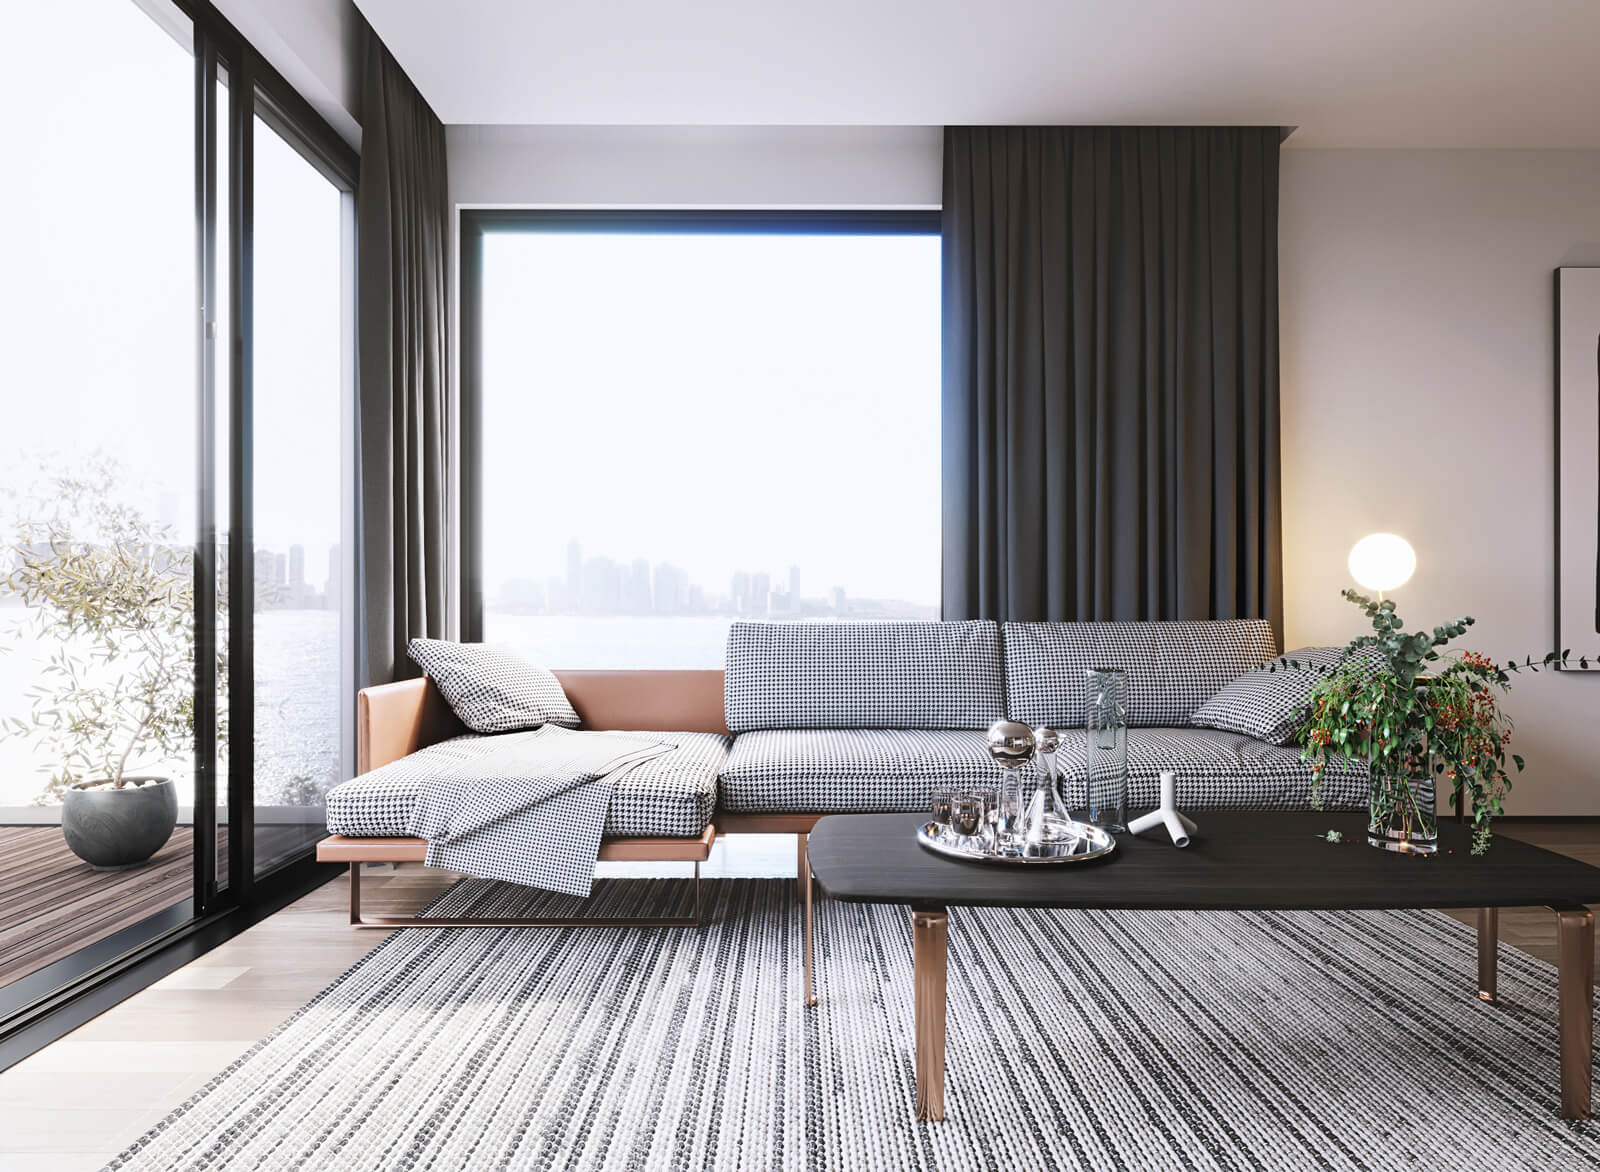 System Solutions implemented in a modern living room